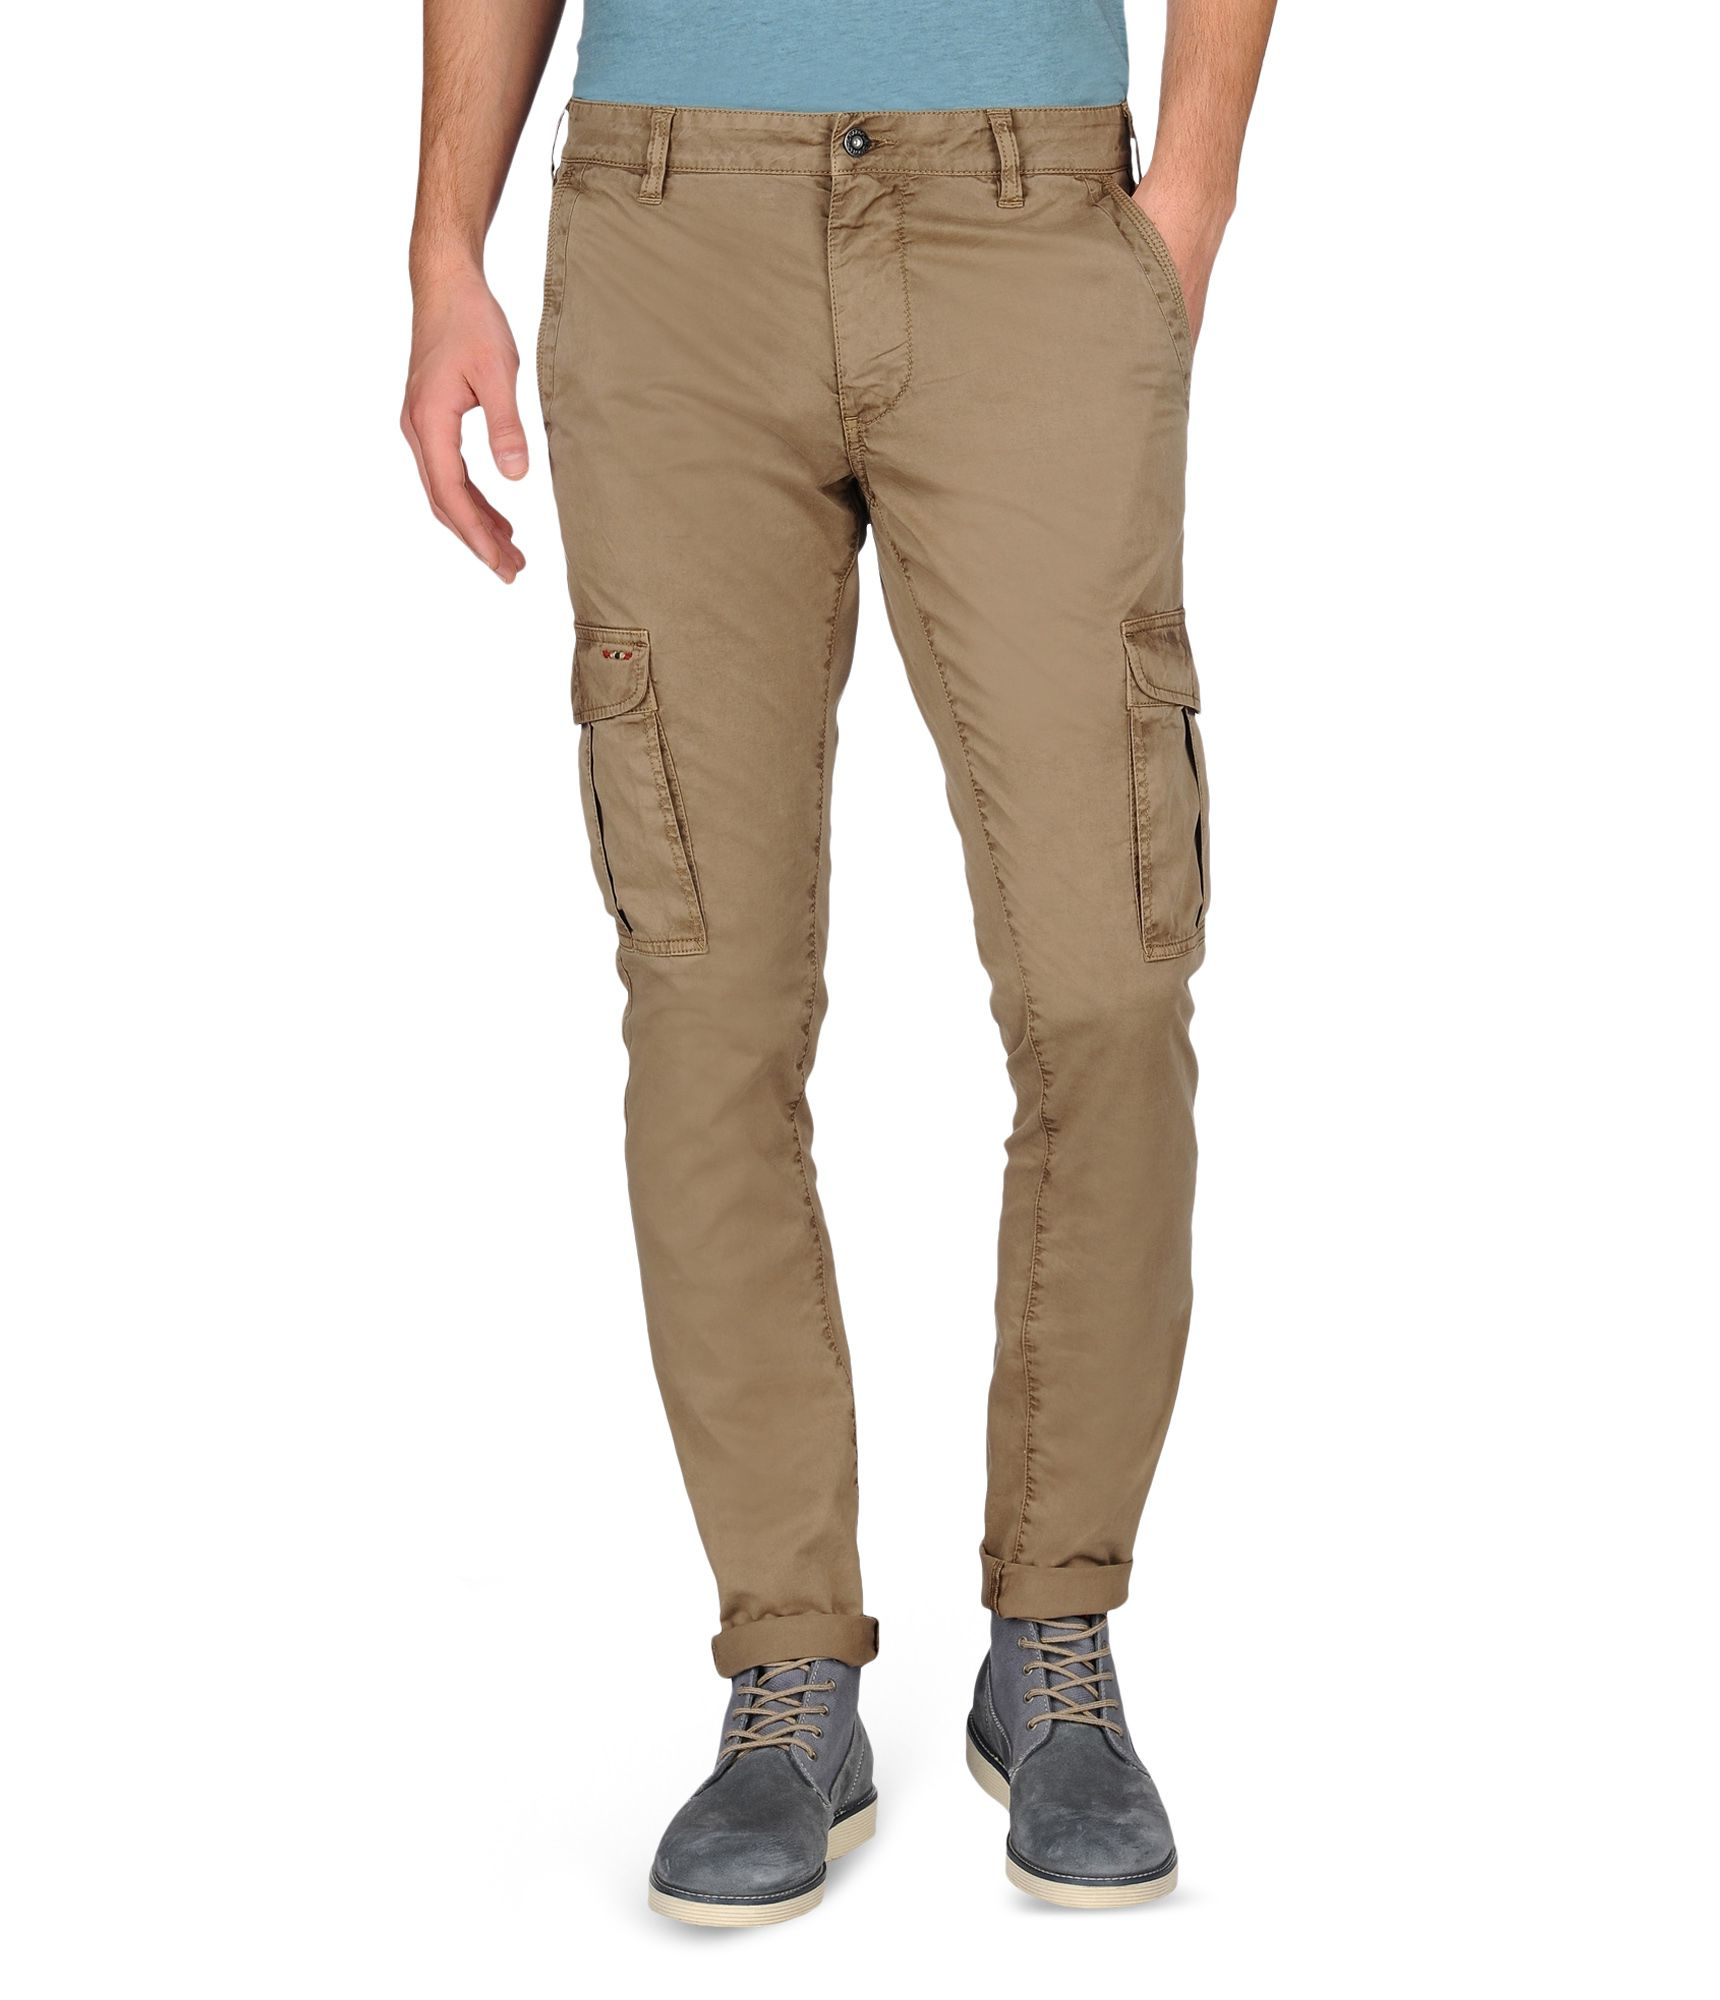 Dickies Pants: Men's Dark Brown Wrinkle Resistant Original Work Pants. If there's a power cord on the floor, your feet will find it. If there's a door open, you're sure to bust your noggin when you meet the door face first as you round the corner.3/5(3).